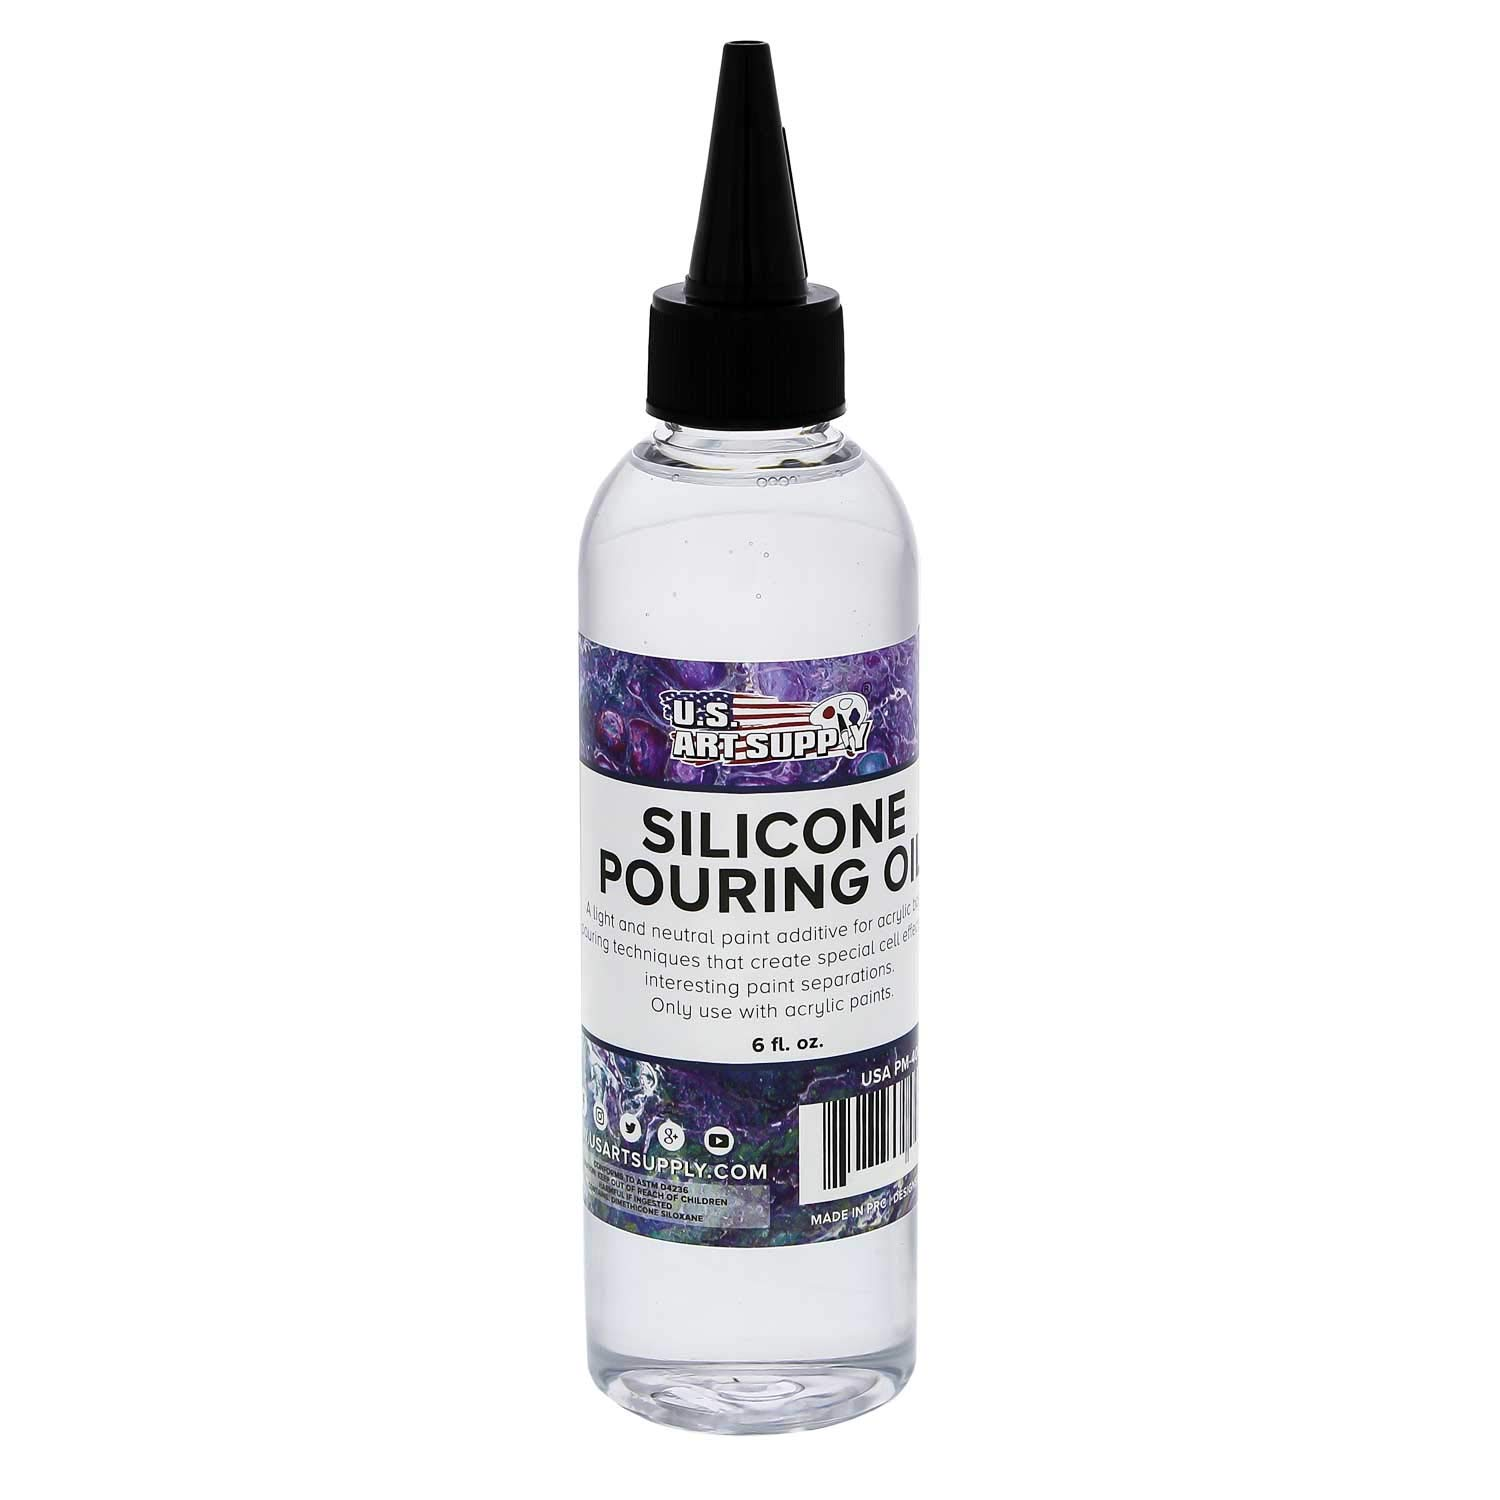 U.S. Art Supply Silicone Pouring Oil - 6-Ounce - 100% Silicone for Dramatic Cell Creation in Acrylic Paint